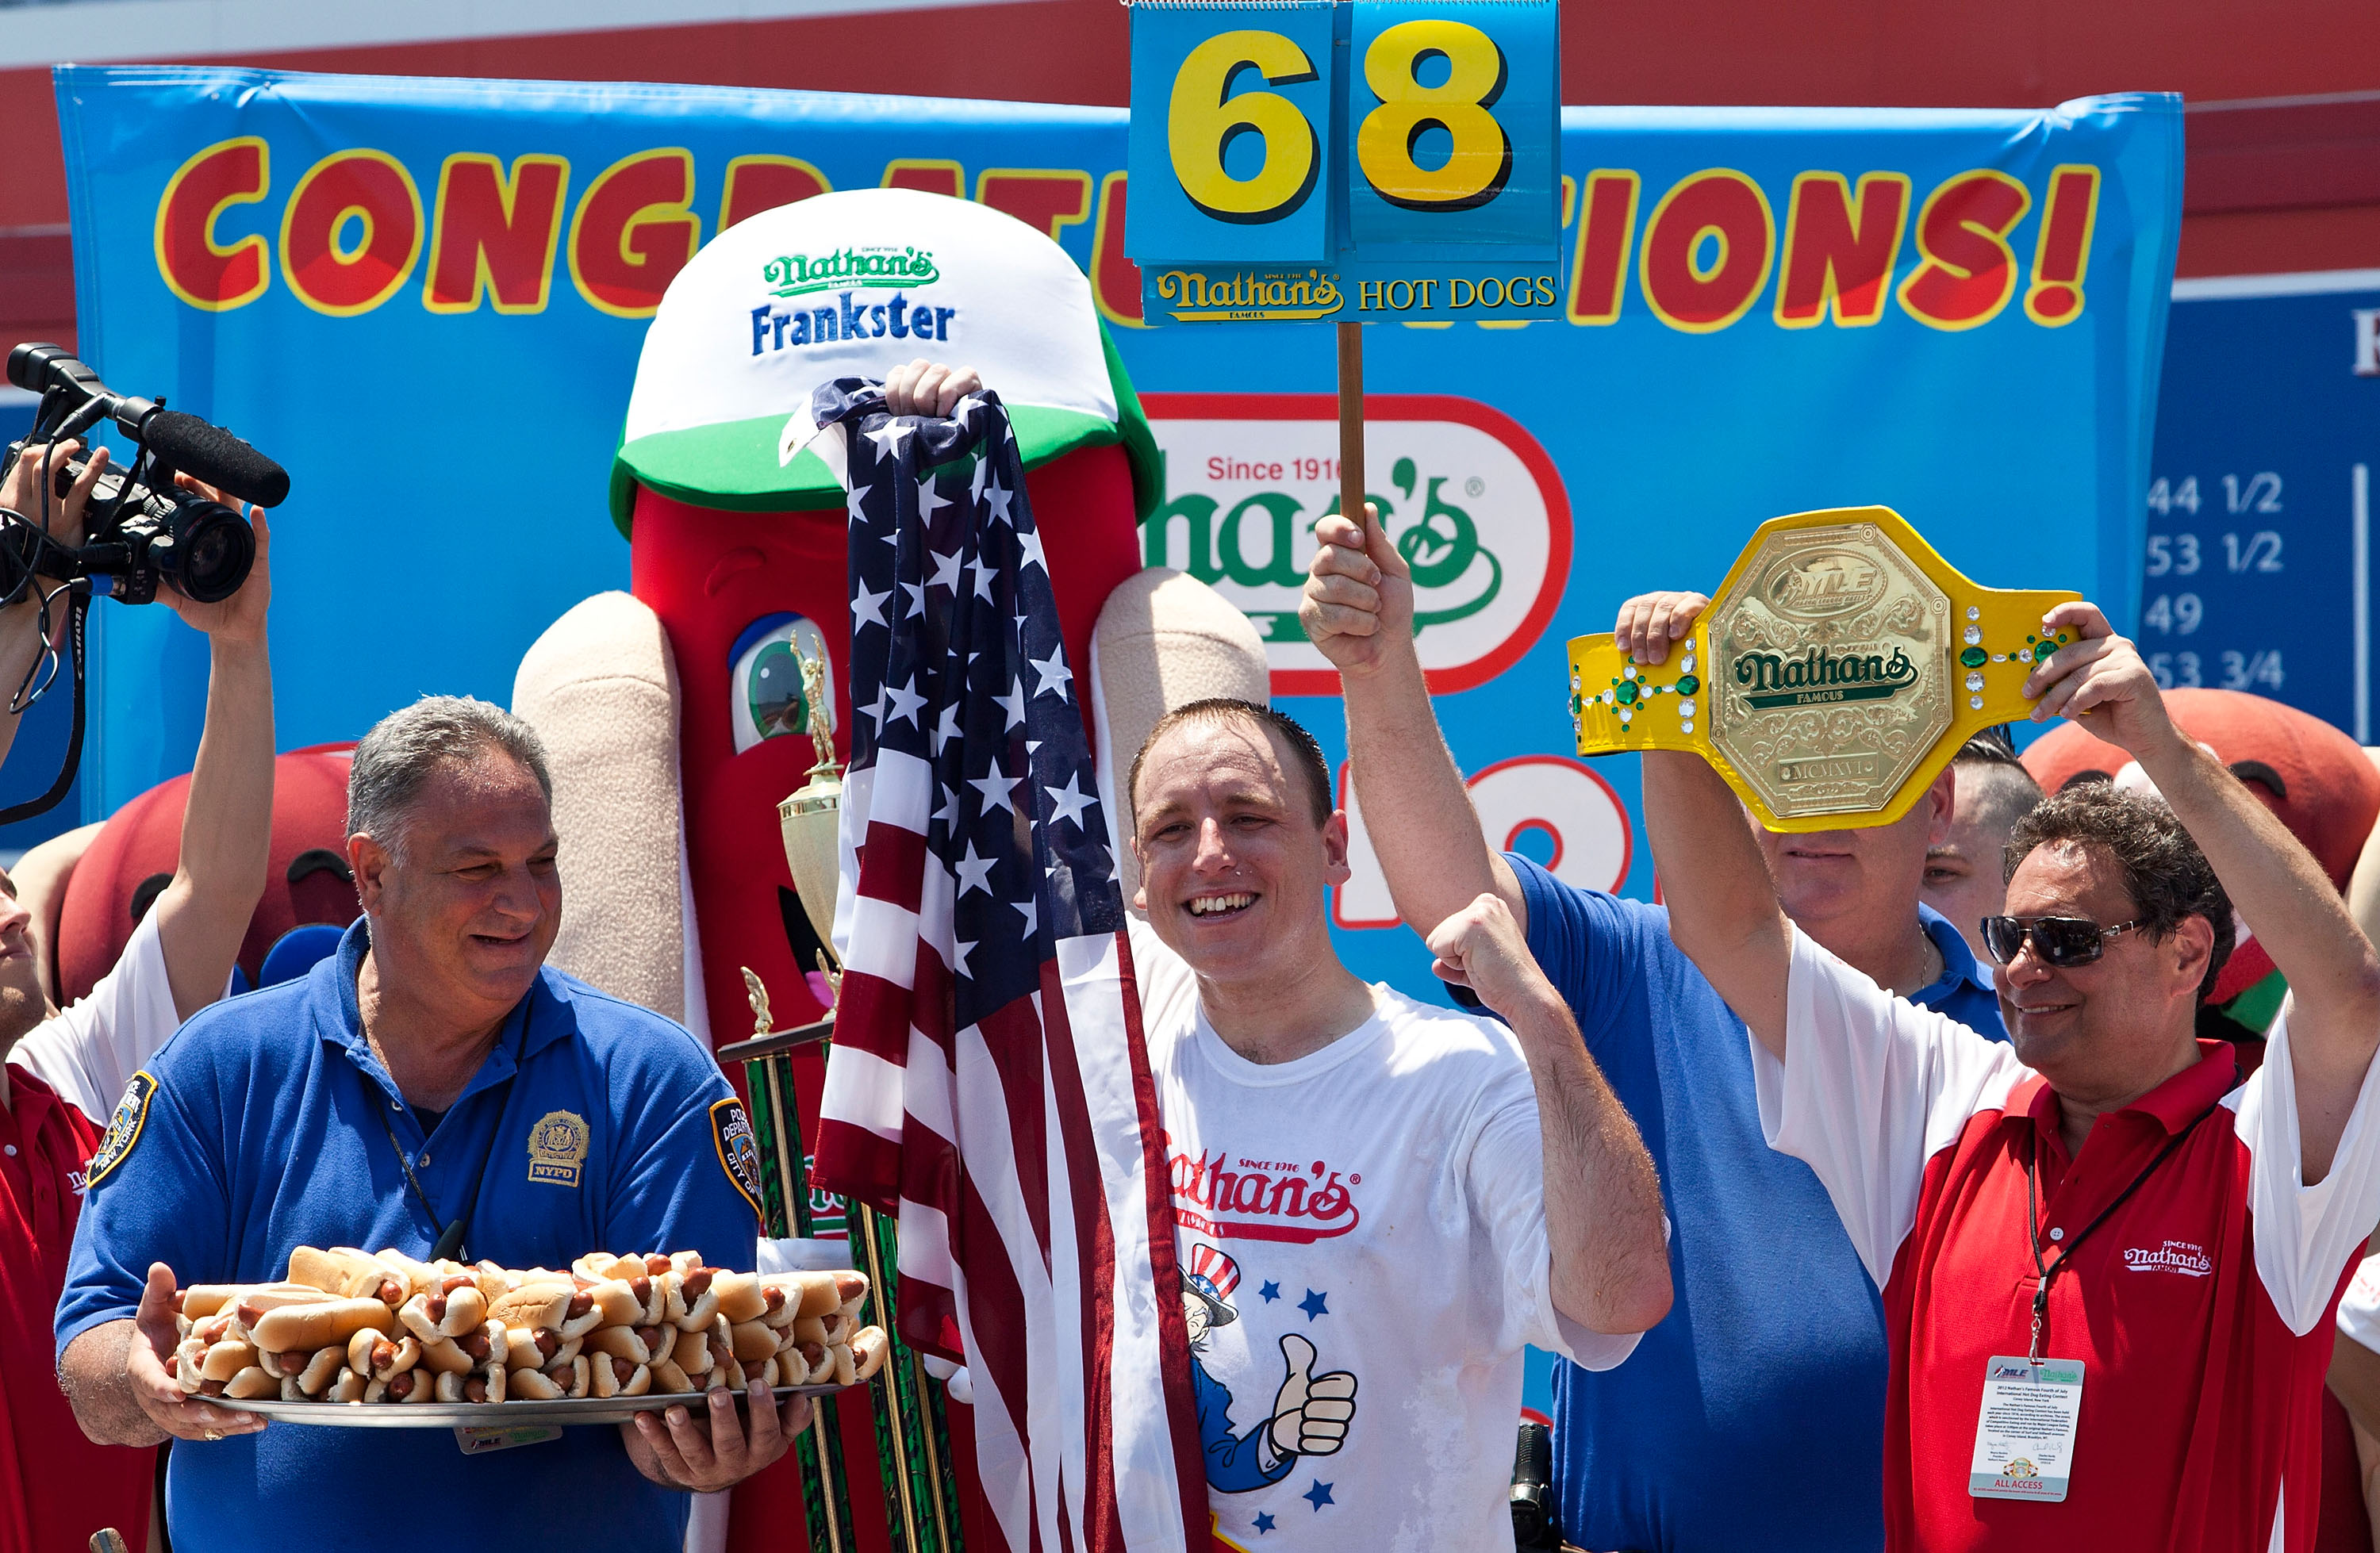 Joey Chestnut is America's greatest, most American athlete